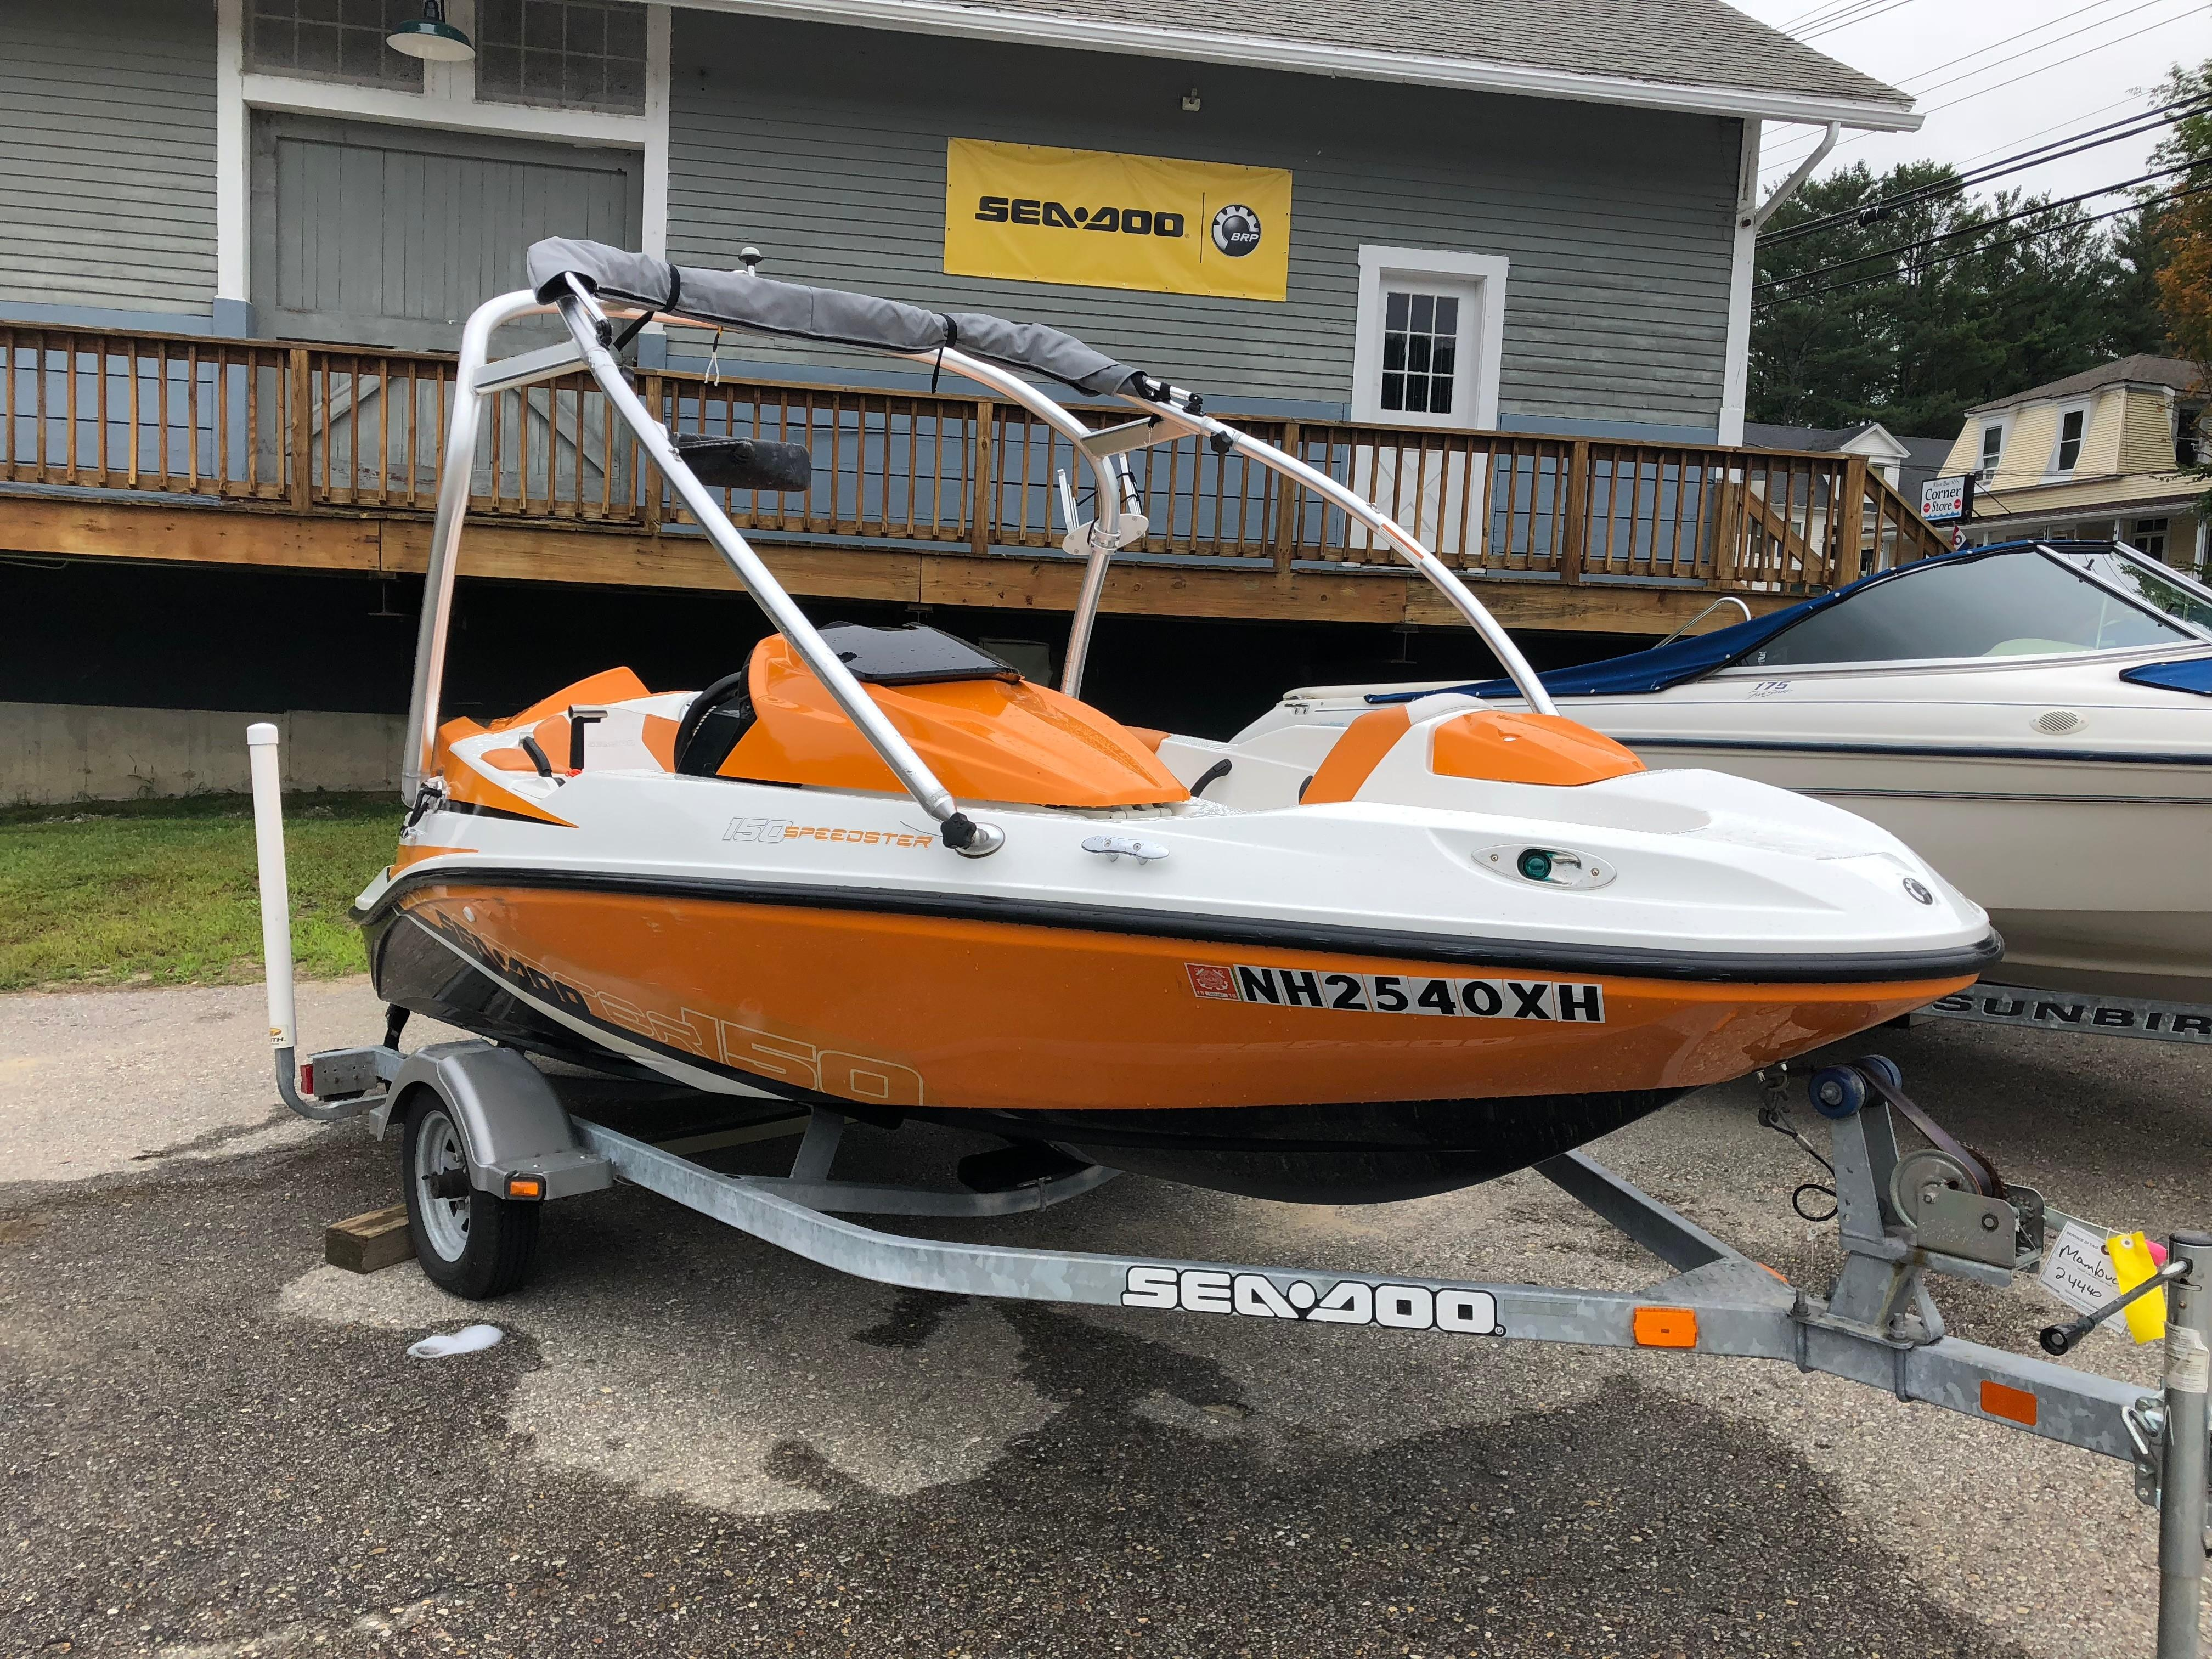 2012 Sea Doo Sportboat boat for sale, model of the boat is Speedster 150 & Image # 5 of 11